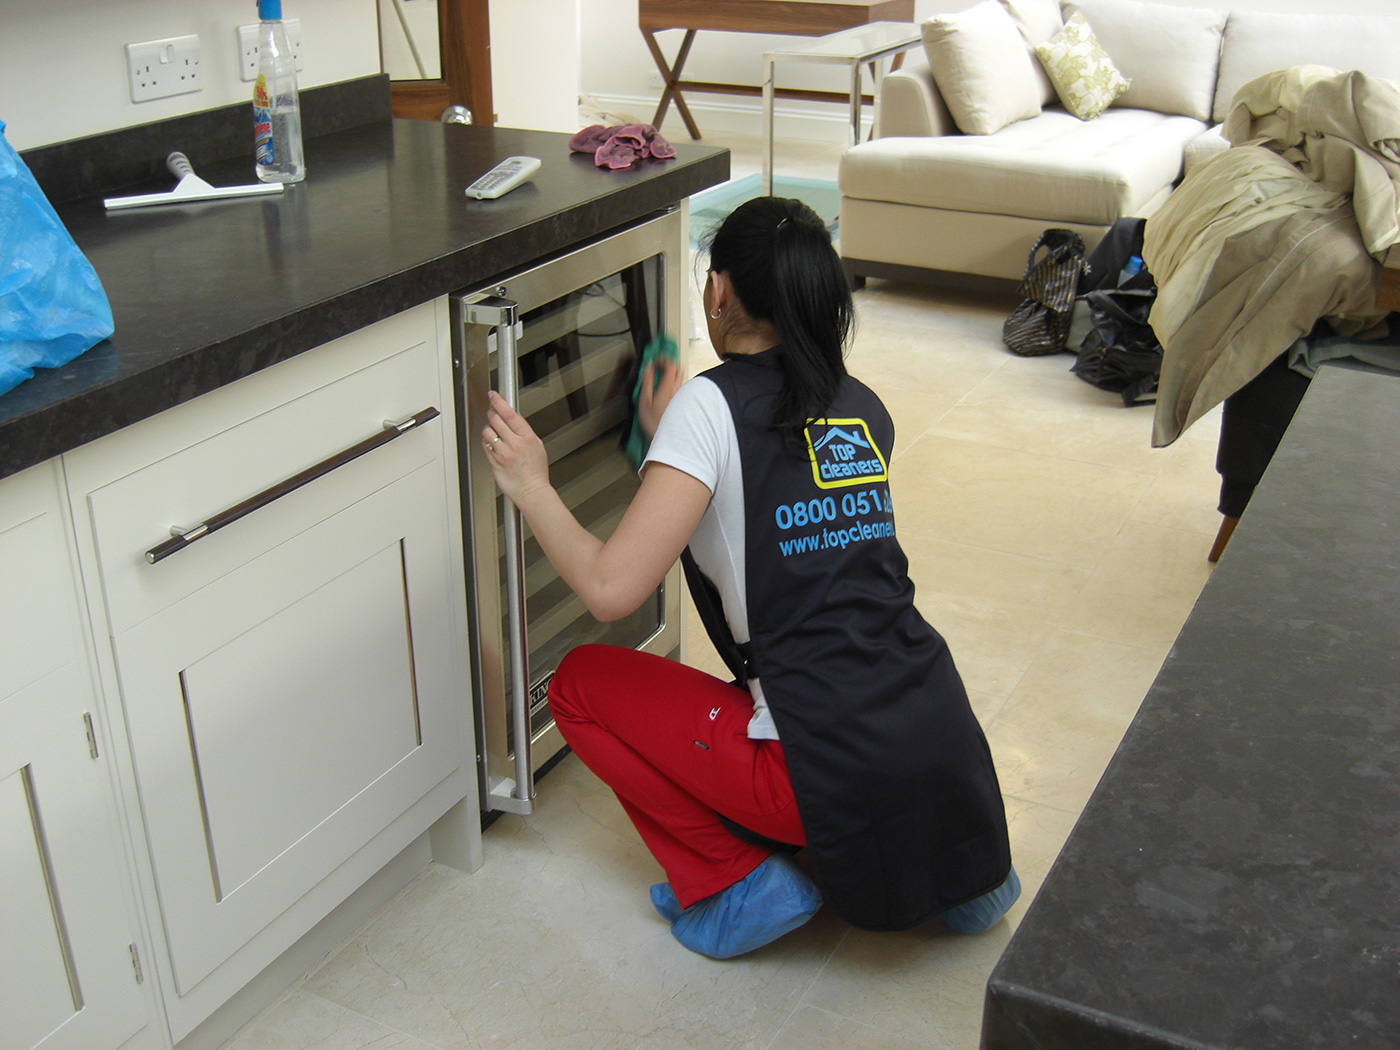 Should I Use a Professional London Cleaning Service After Festive Season?